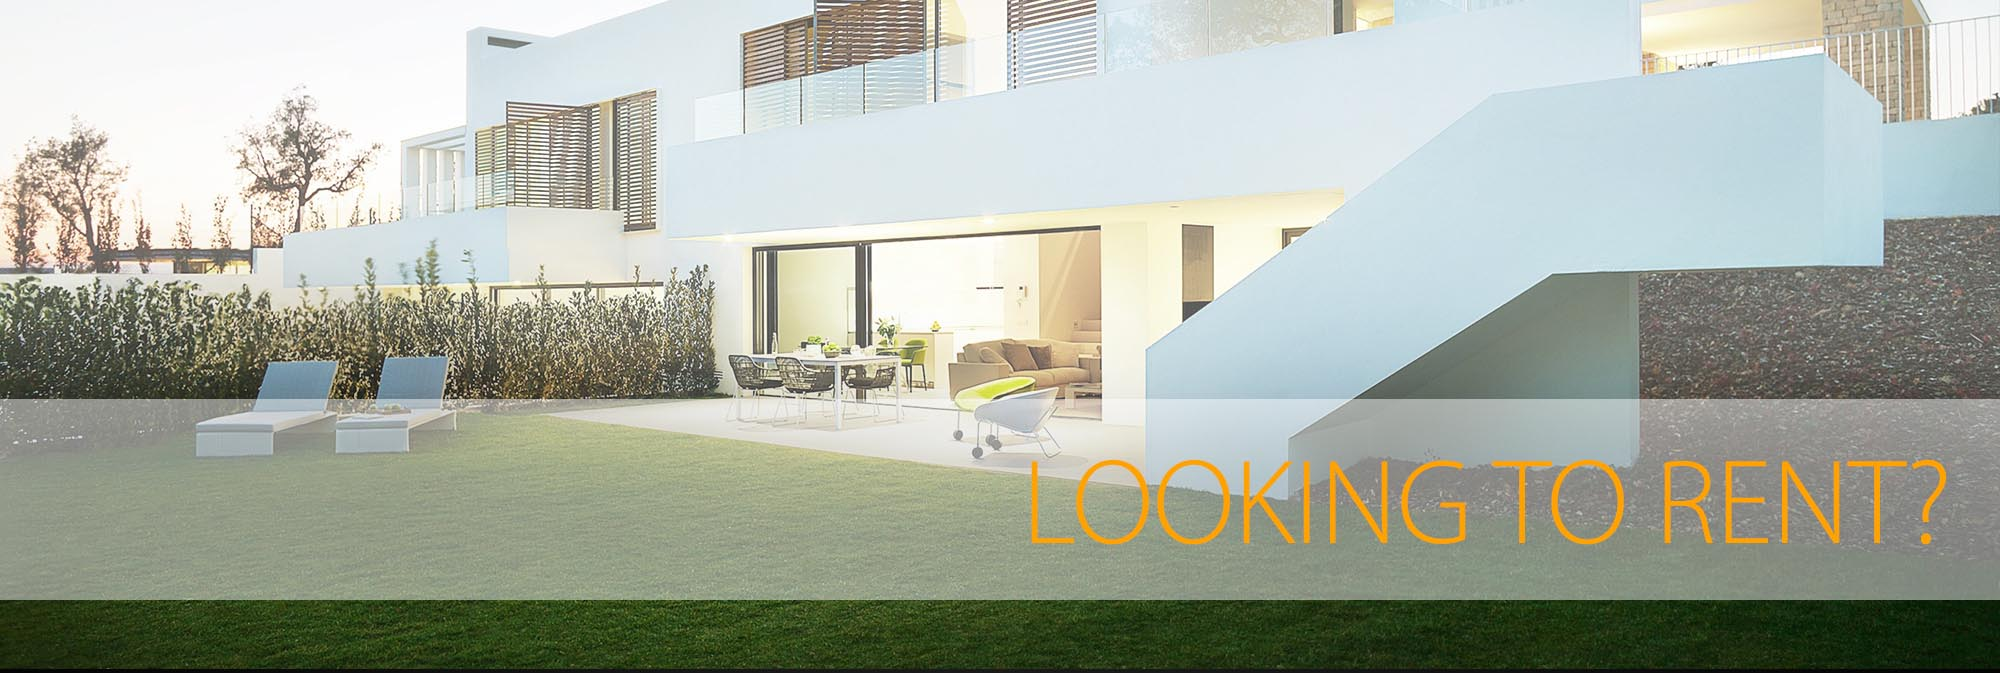 looking-to-rent-banner